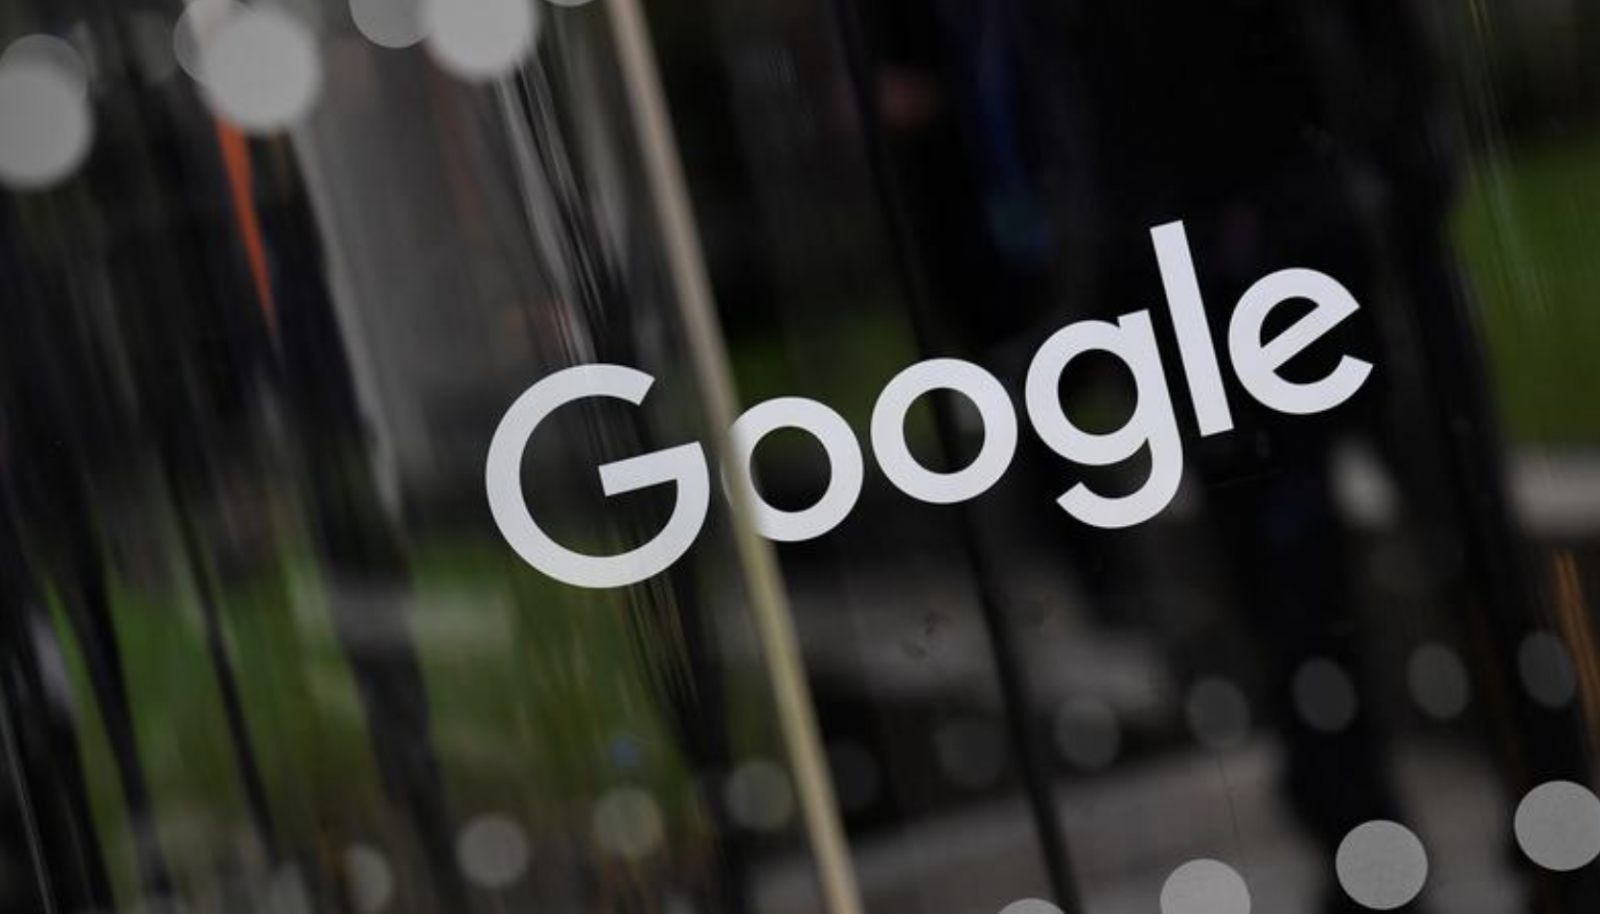 Google and Viber review adverts for Myanmar military-backed telecoms firm